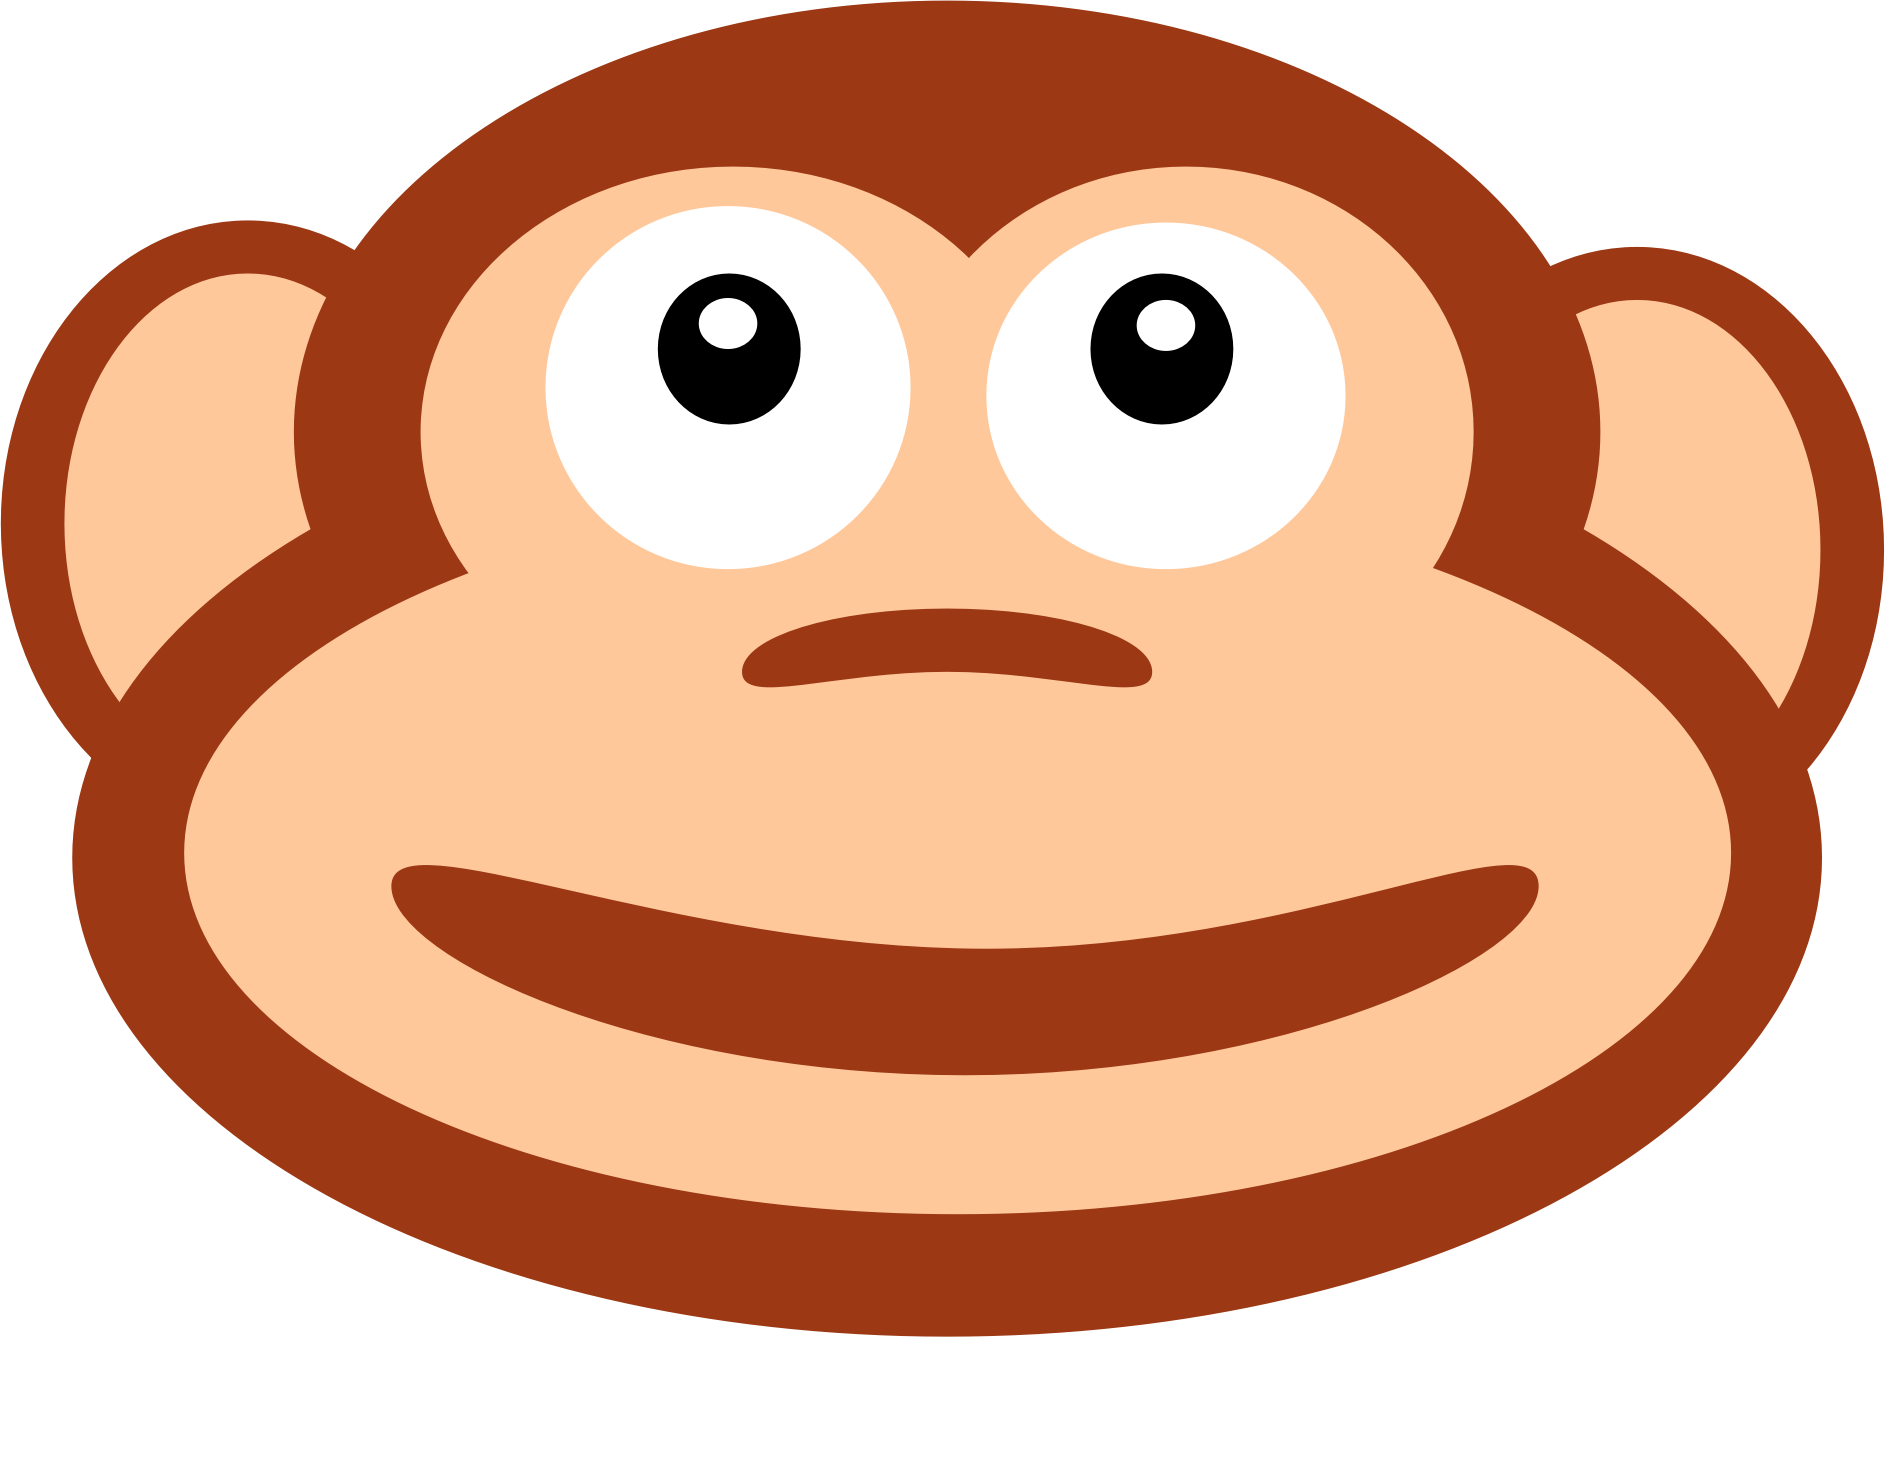 Monkey by captainblong